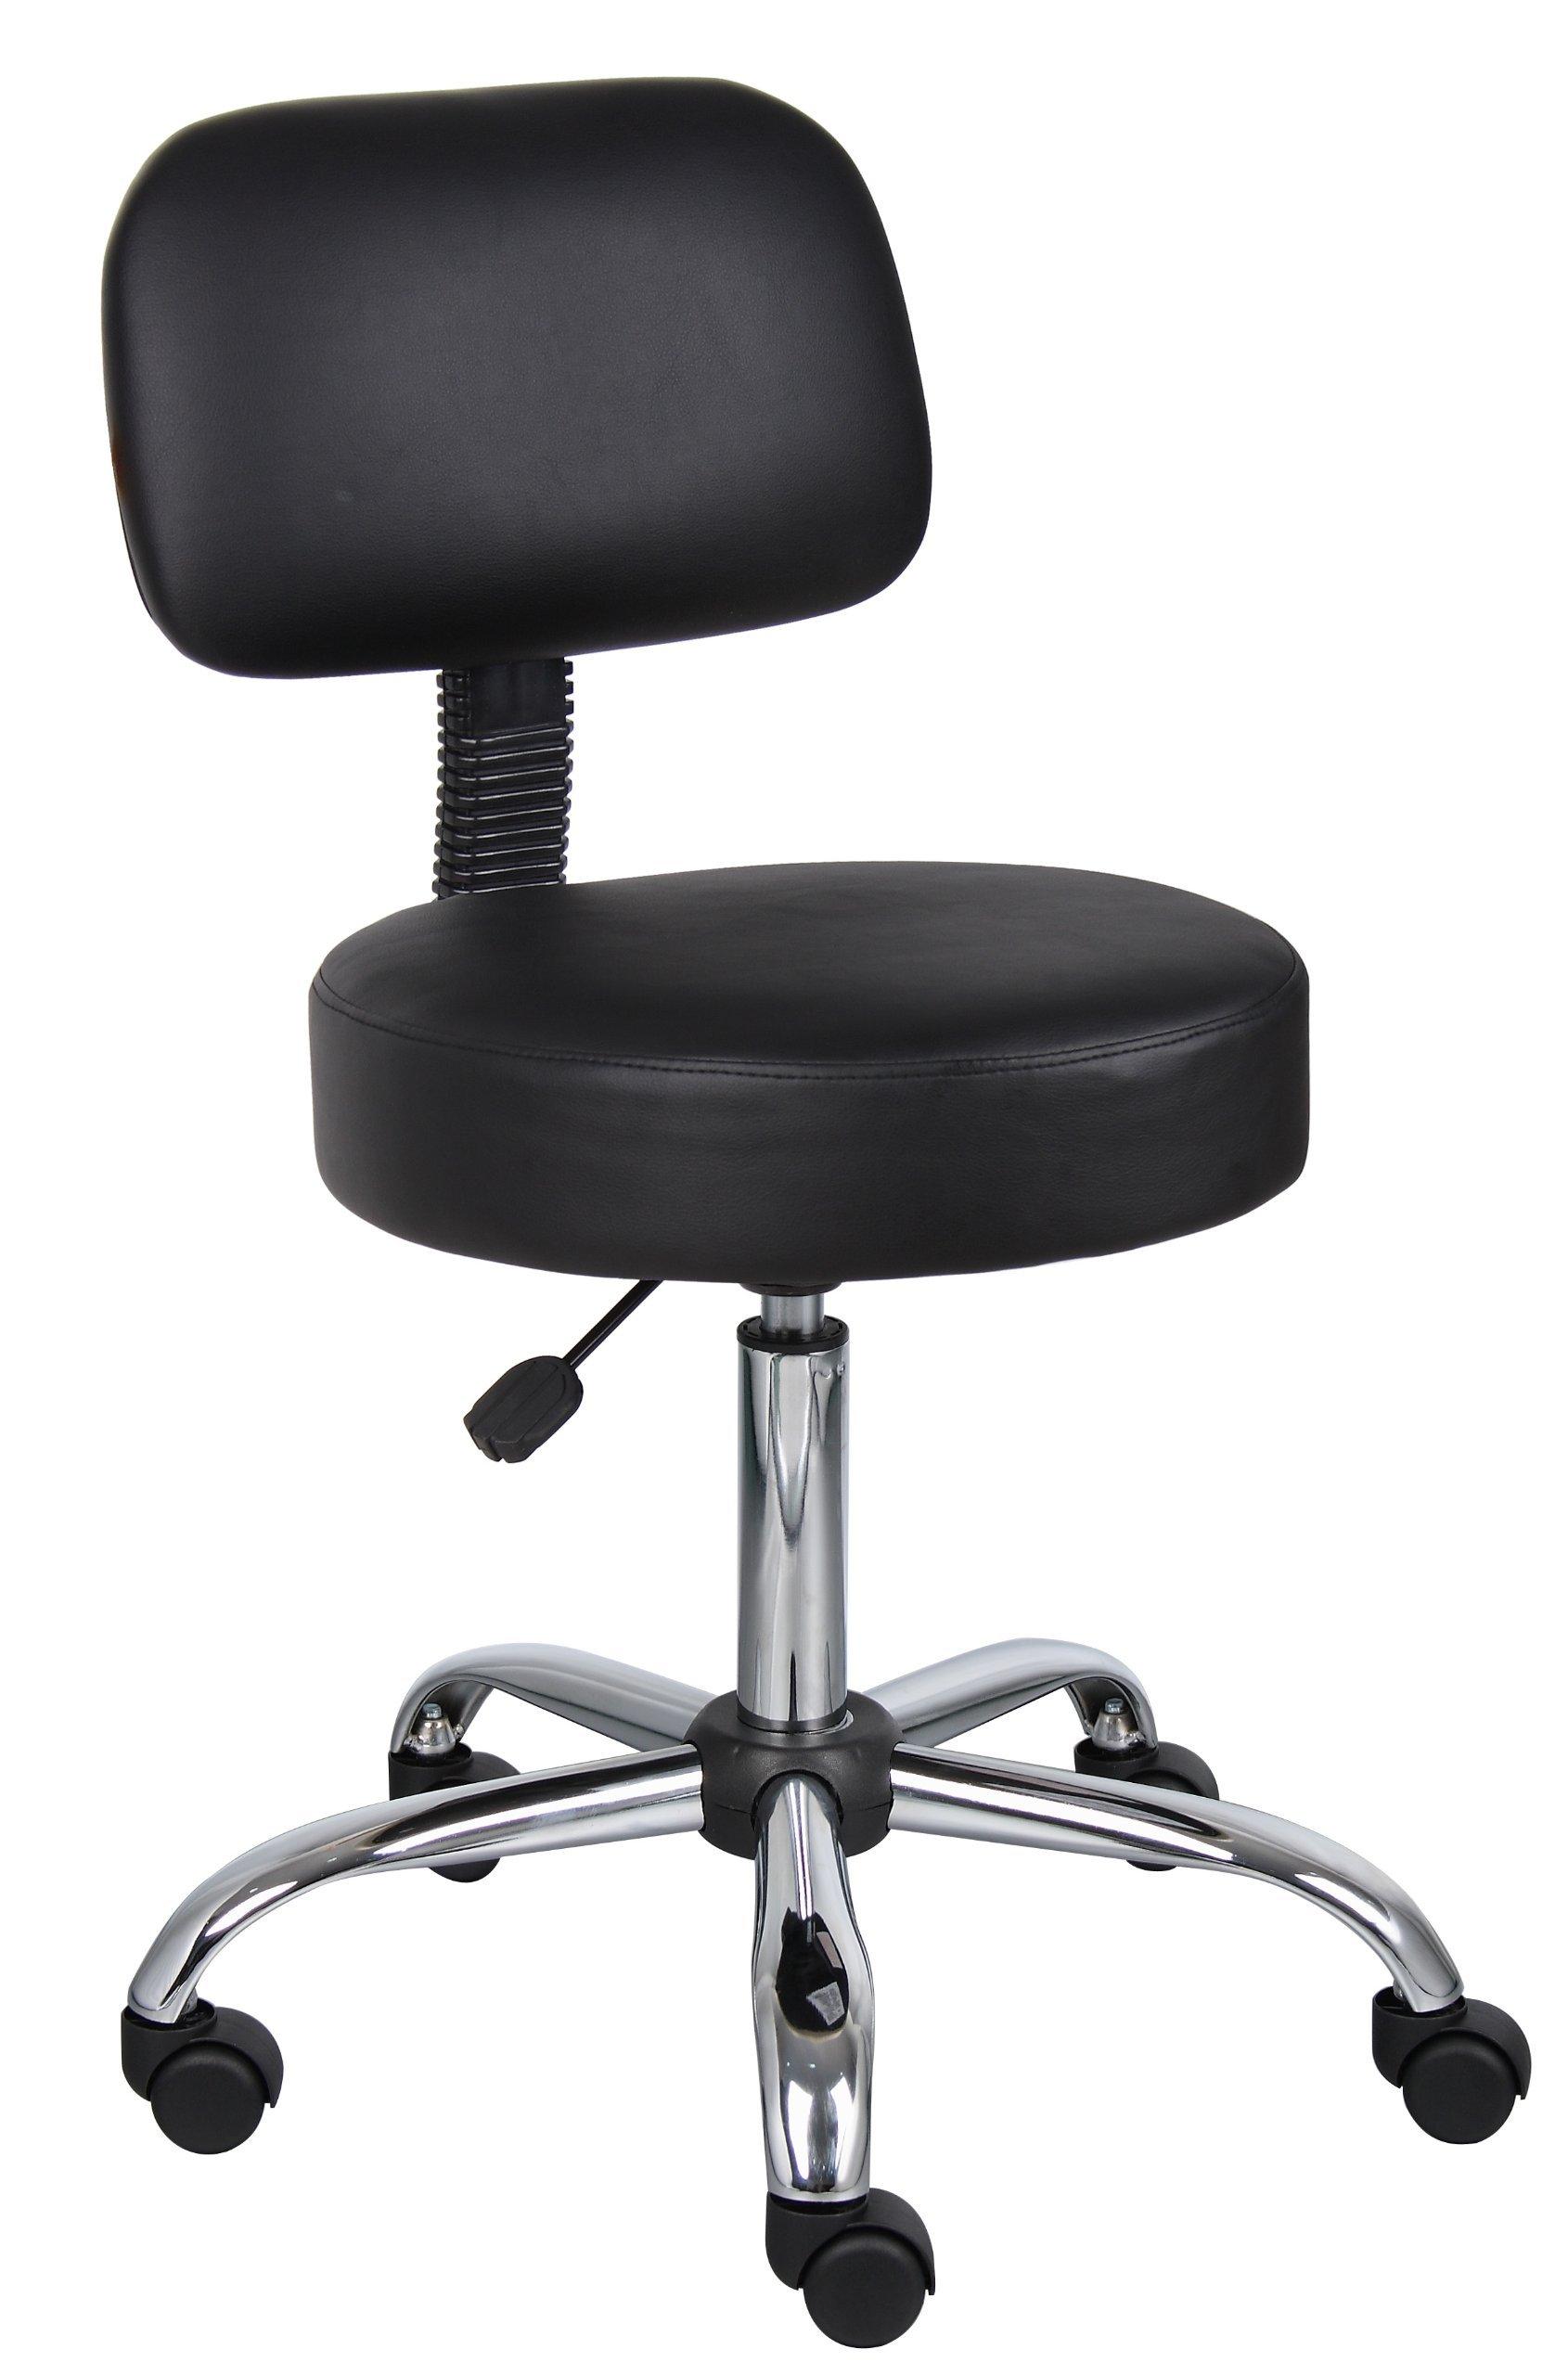 Boss Office Products B245-BK Be Well Medical Spa Stool with Back in Black (Renewed)